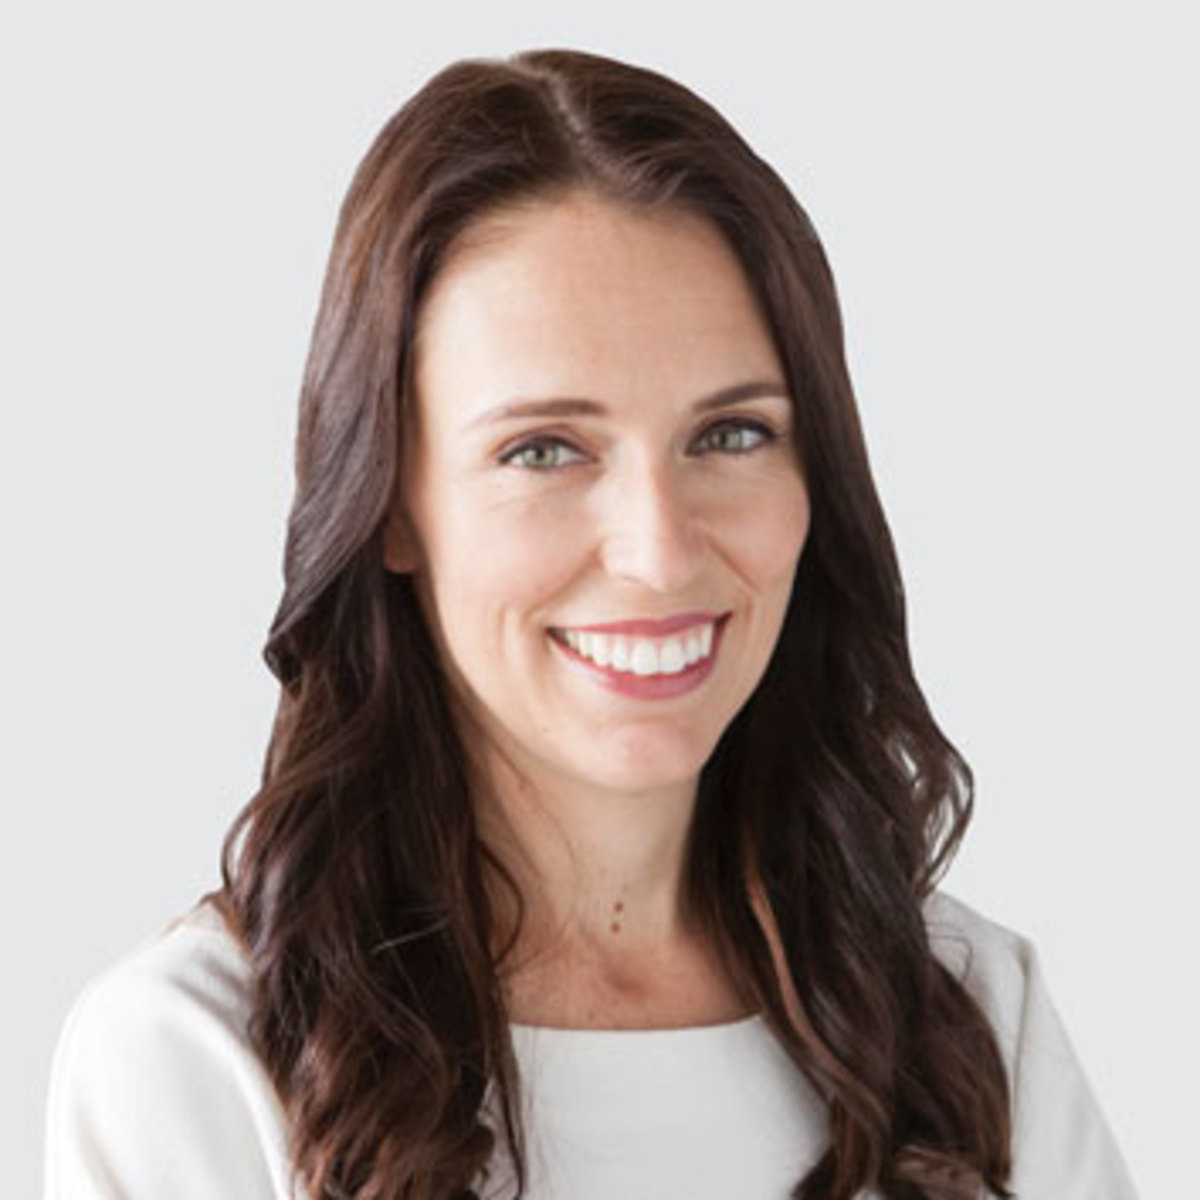 The Right Honorable Jacinda Adern, prime minister of New Zealand.